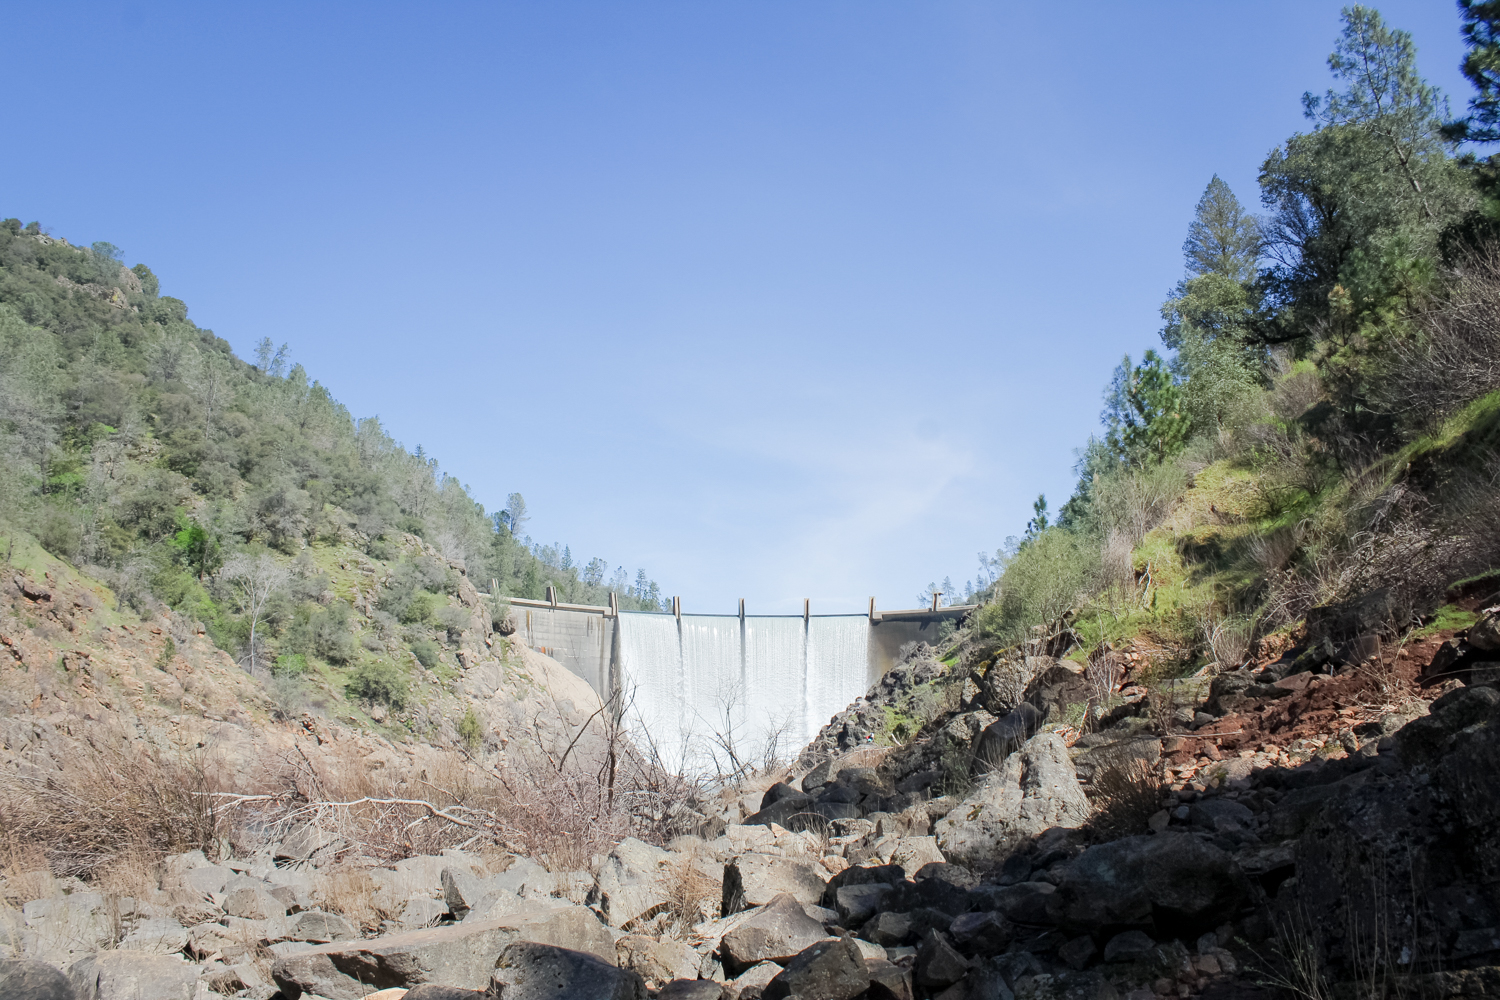 Hiking at Lake Clementine dam in Auburn, CA | easy northern california hikes | tintedgreen